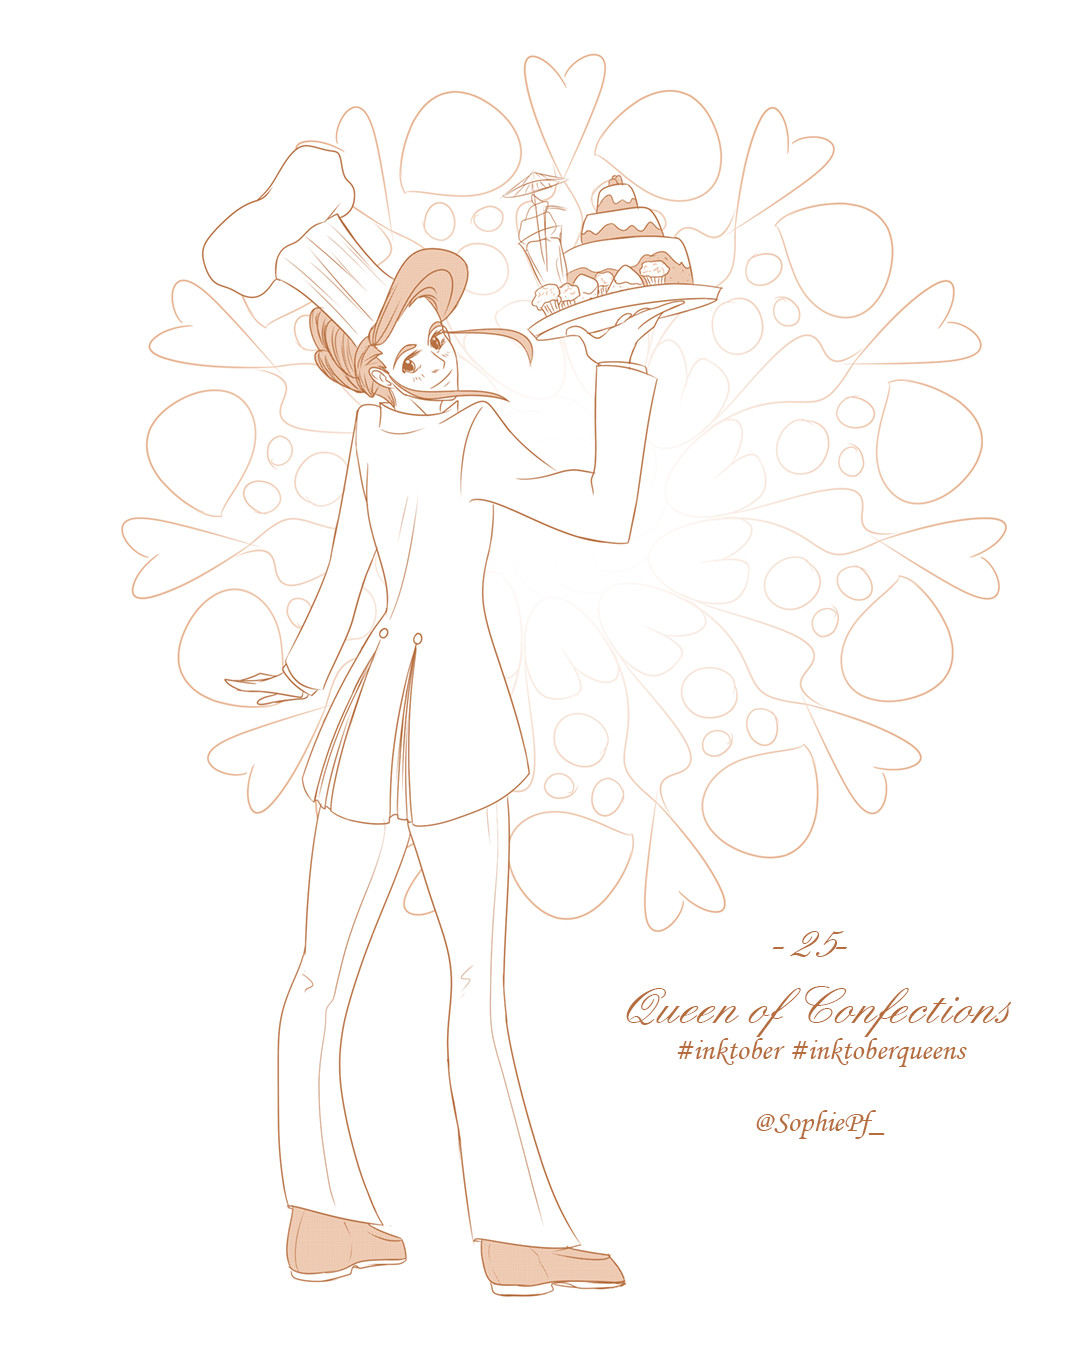 Sophie pfrotzschner 18 10 25 queen of confections